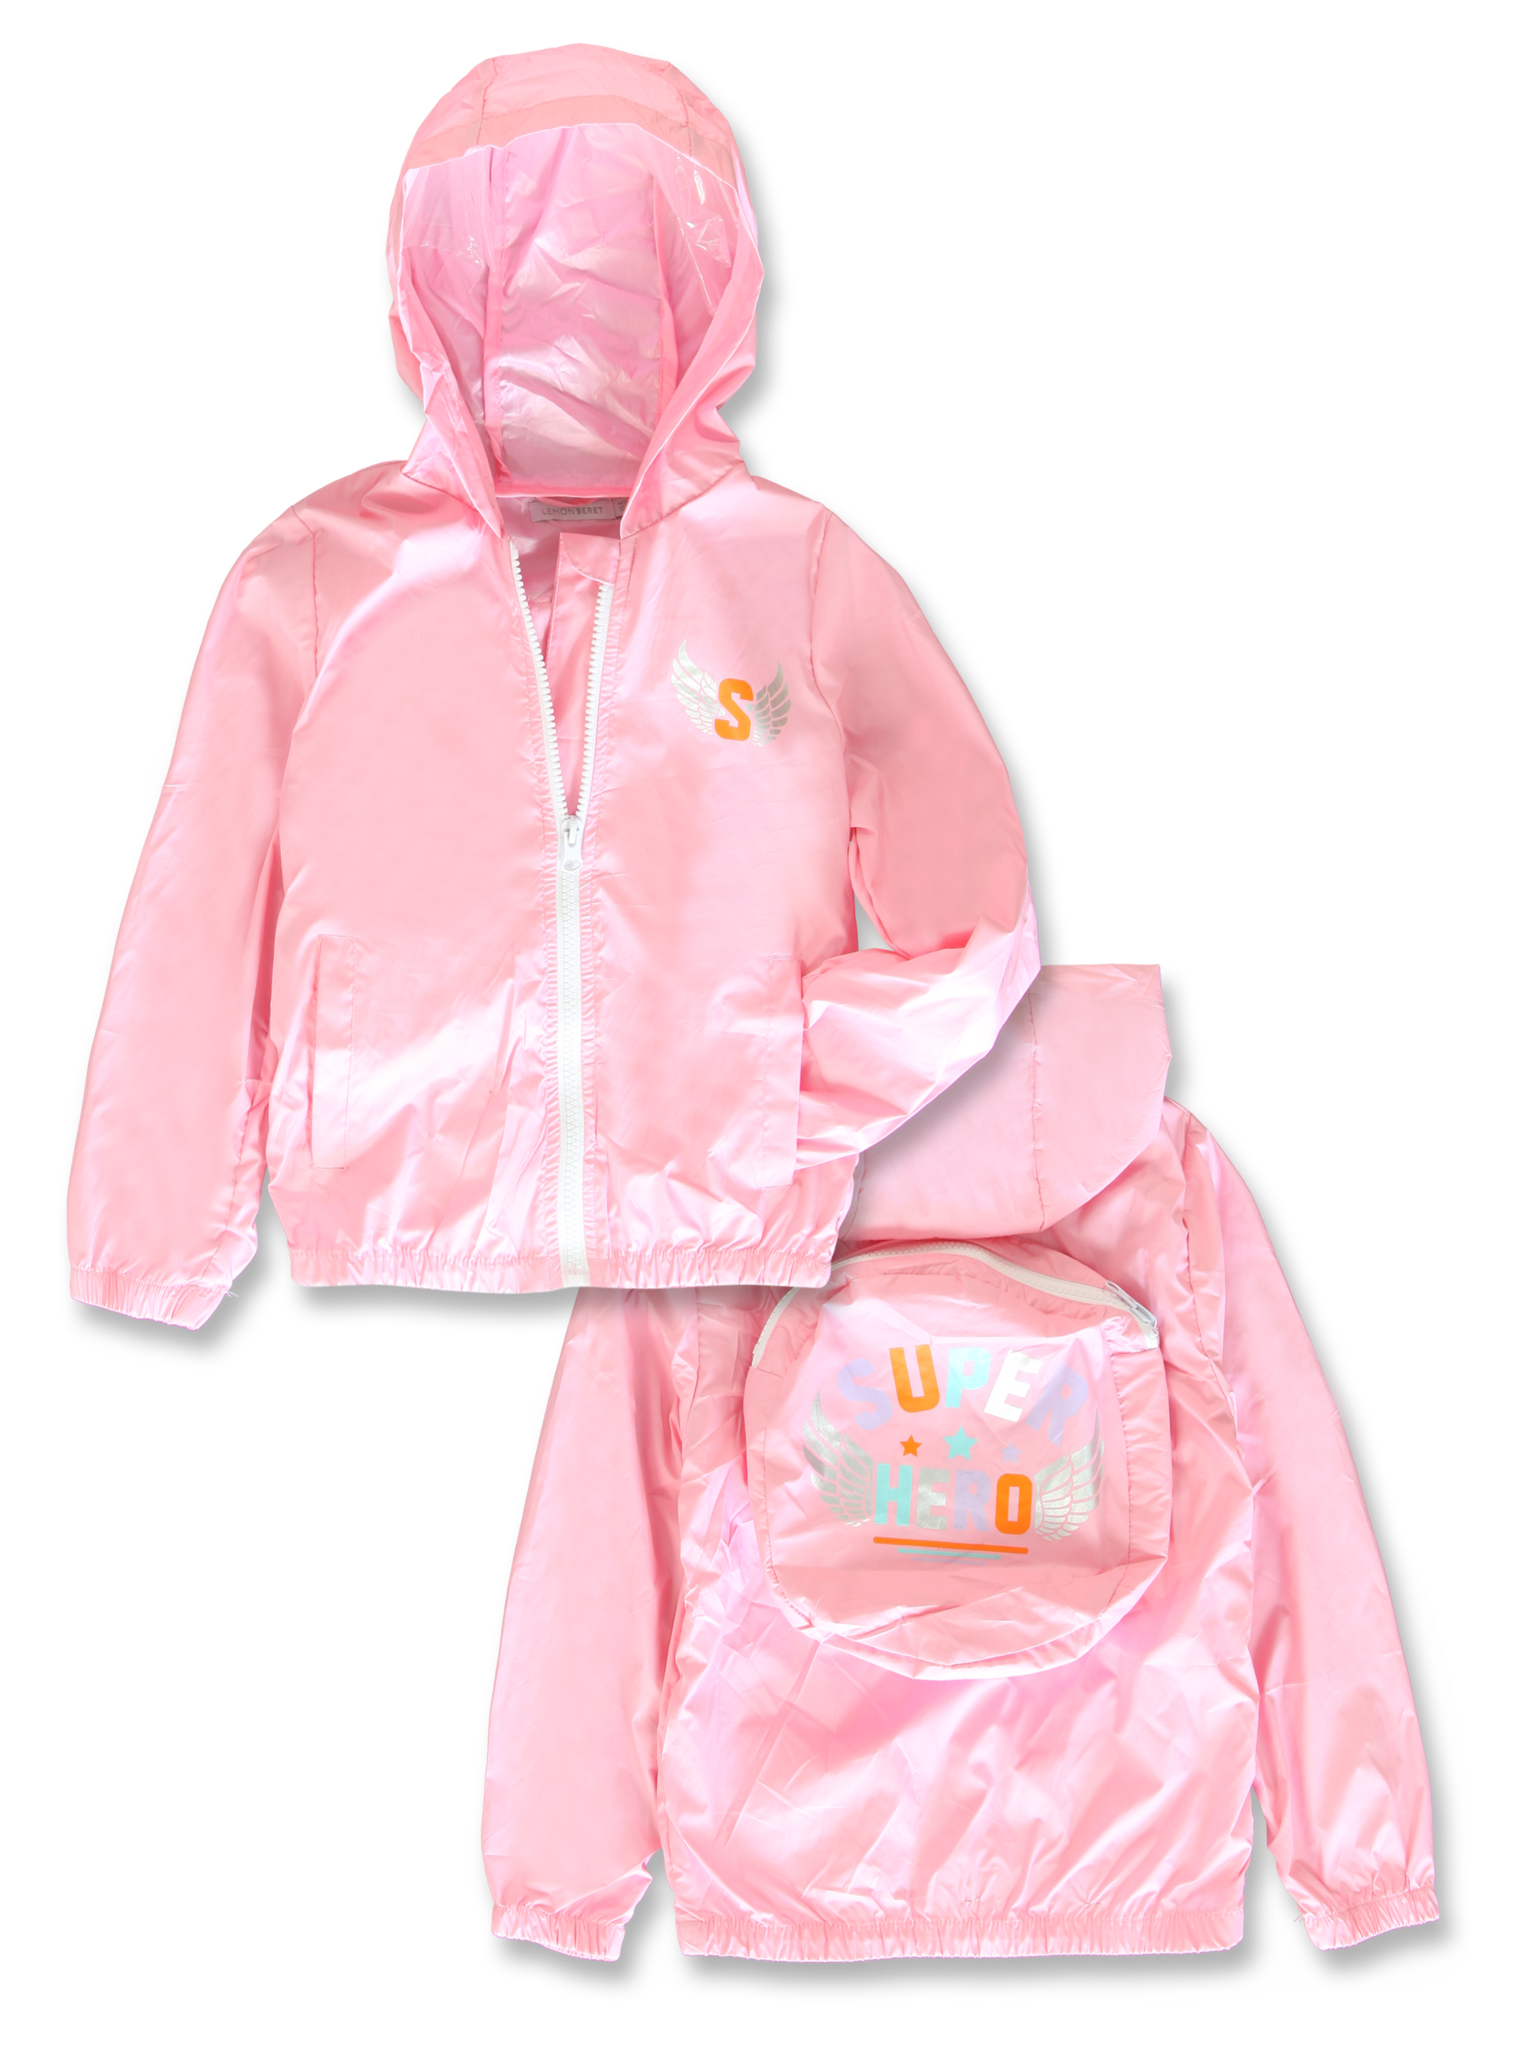 All Brands | Summerproducts Small Girls | Jacket | 10 pcs/box